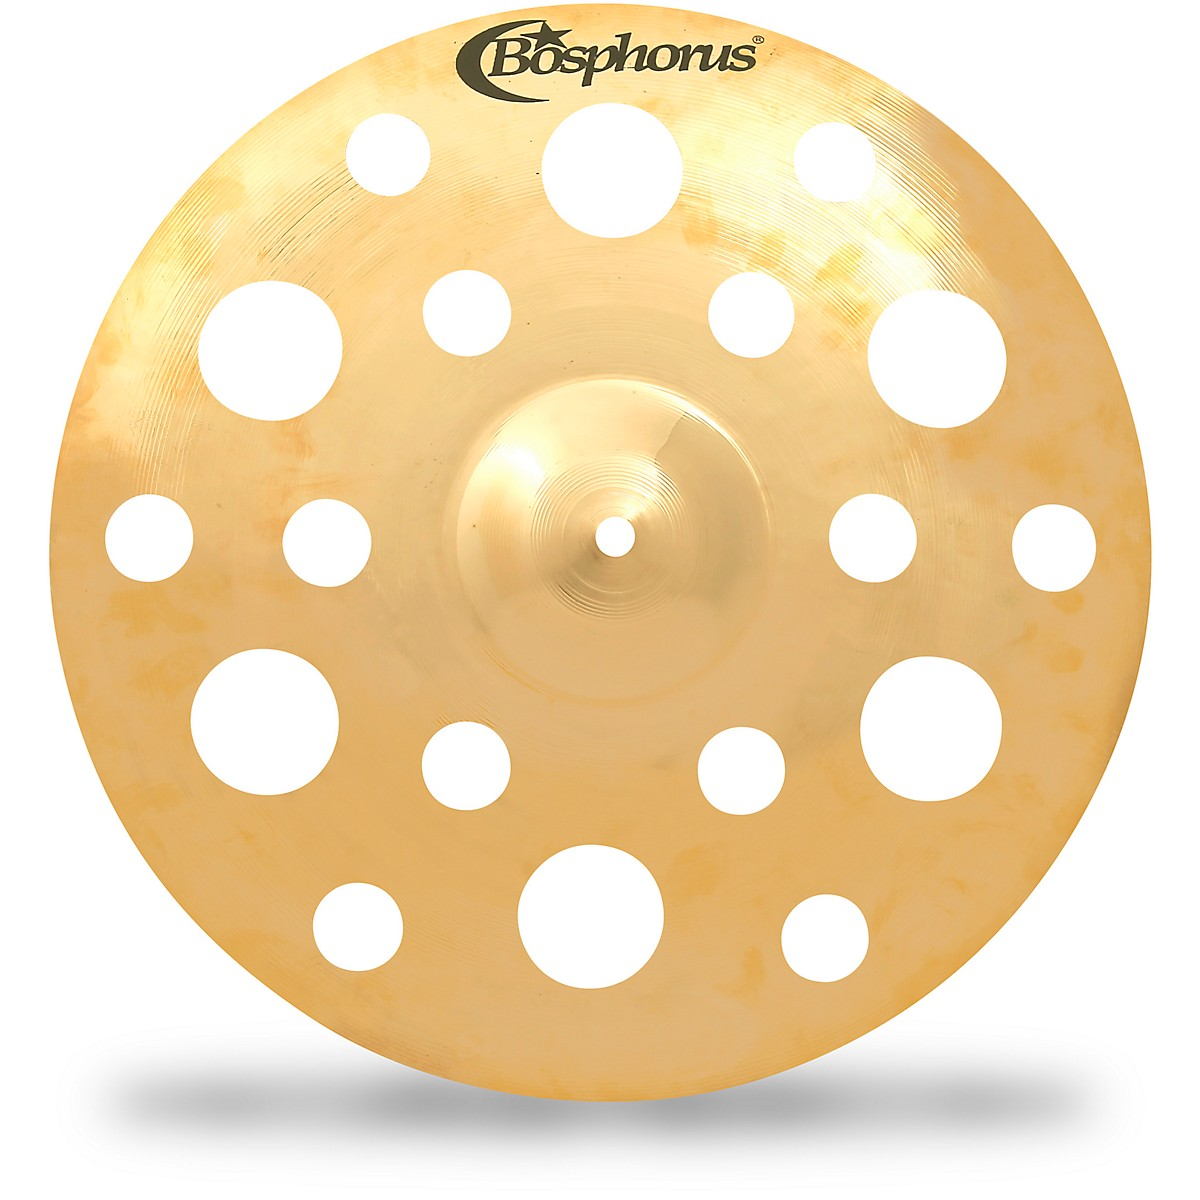 Bosphorus Cymbals Gold Fx Crash with 18 Holes